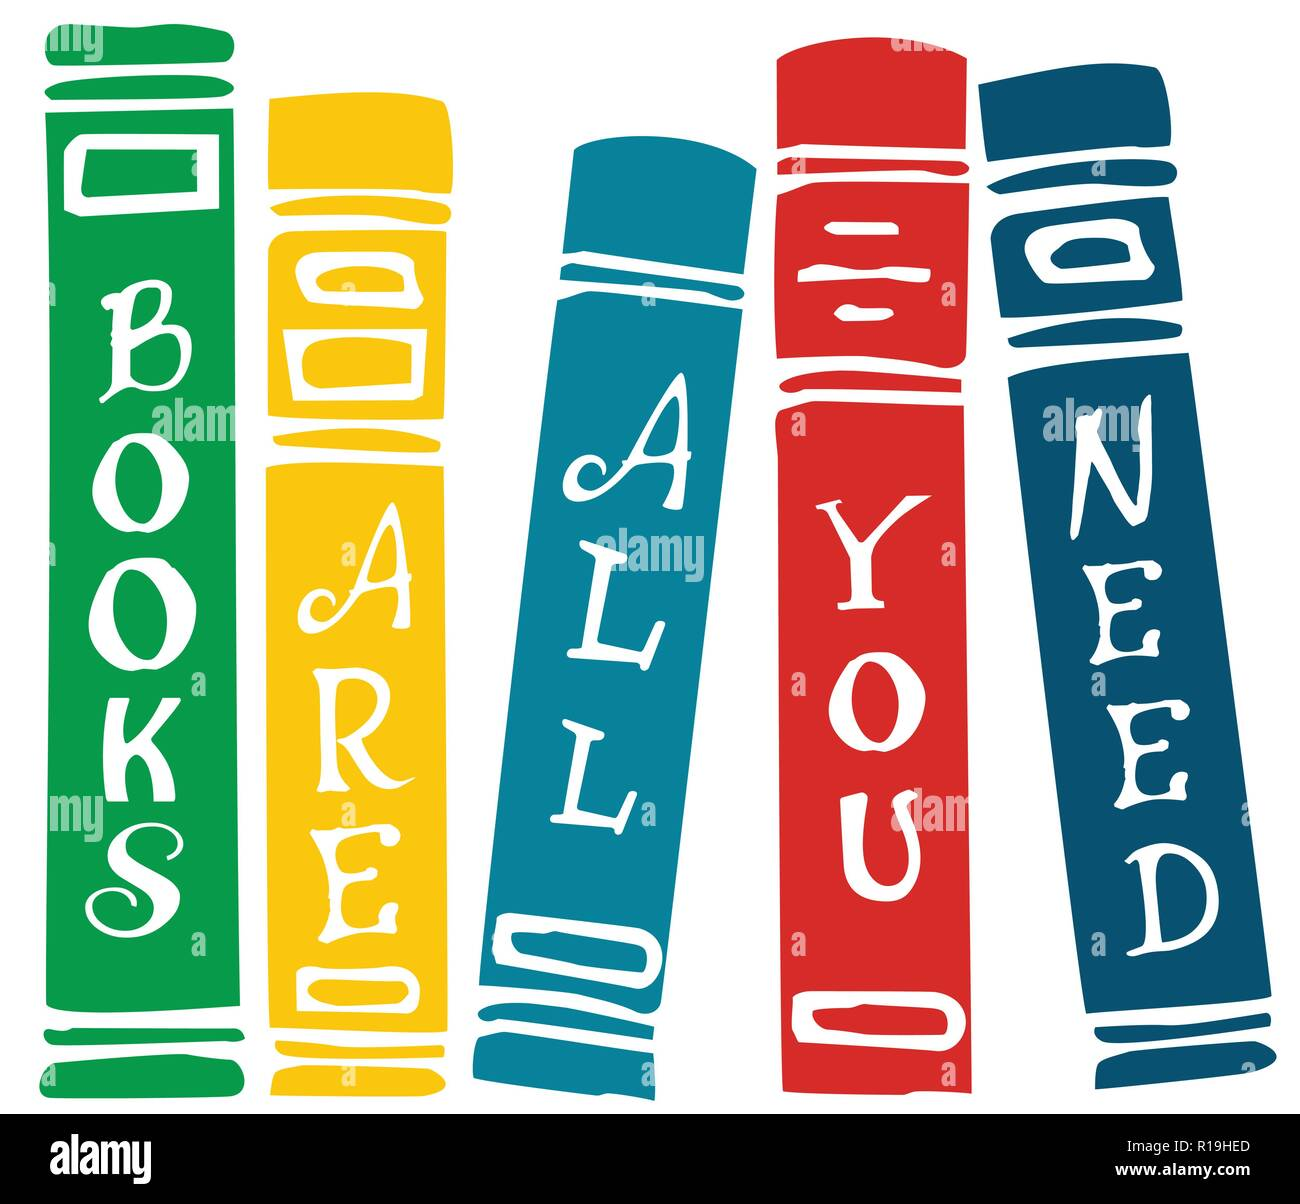 Books are all you need lettering on colorful vector set of book covers Stock Vector